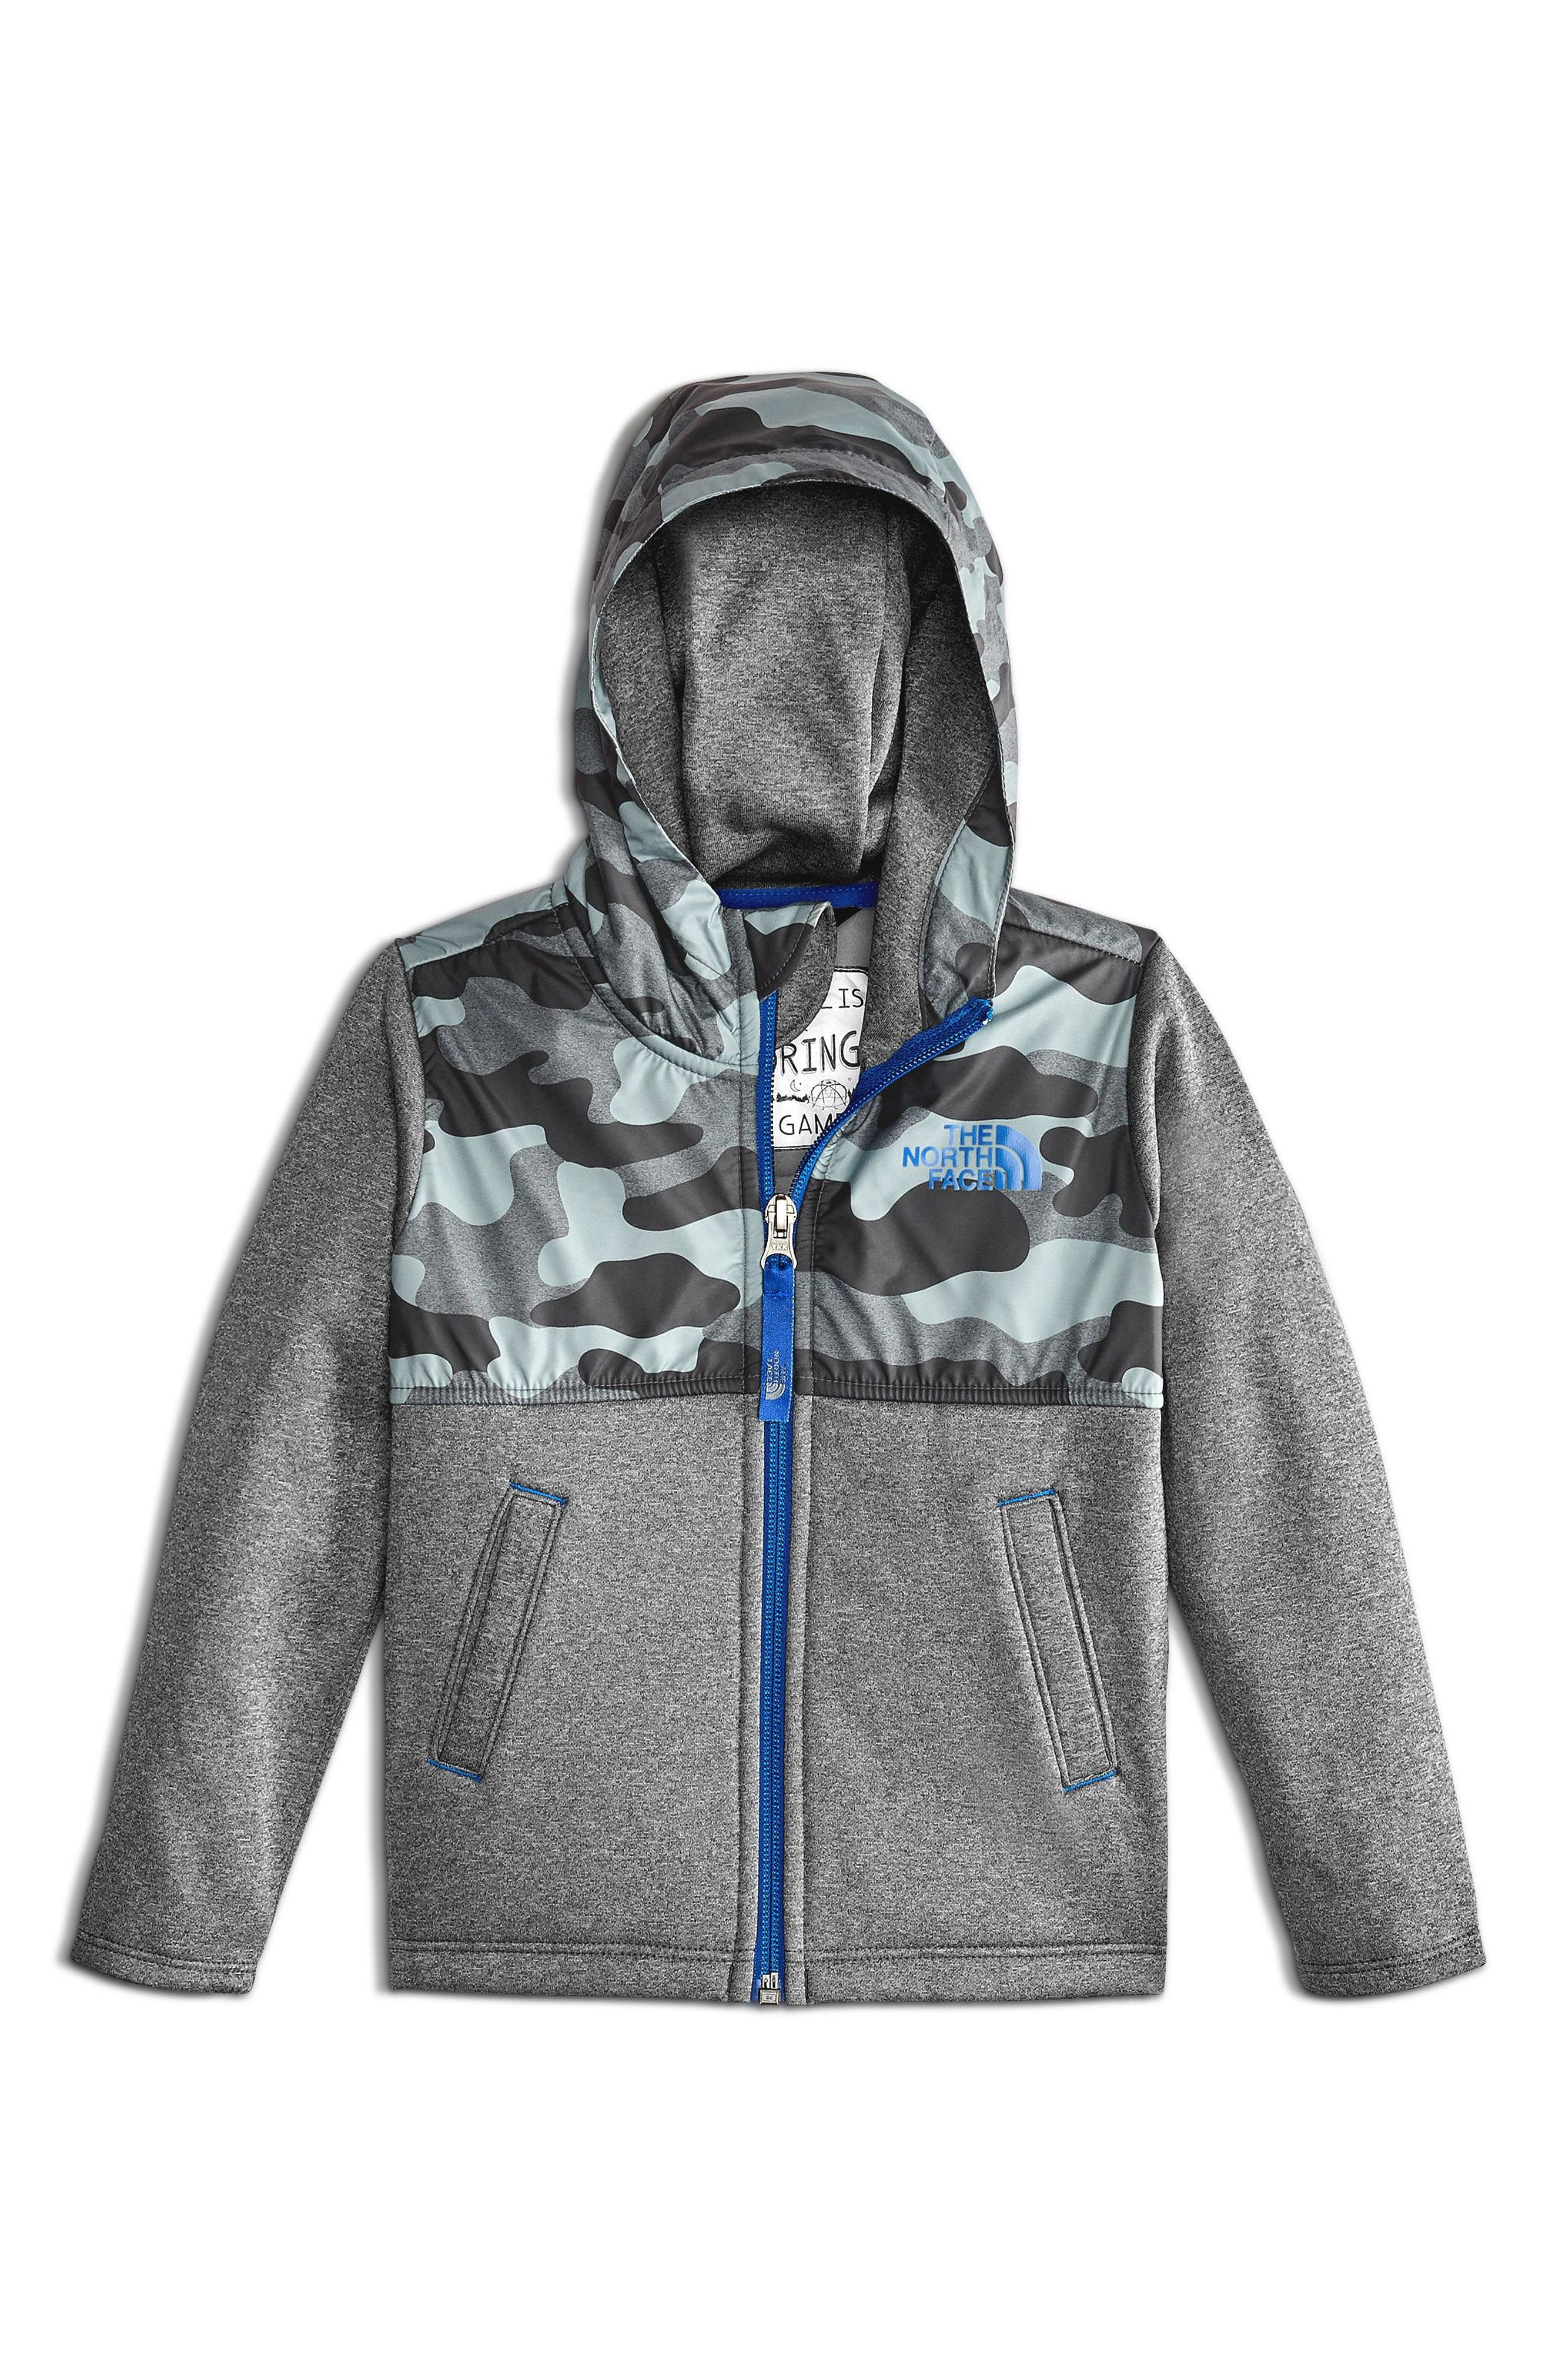 Main Image - The North Face Kickin' it Zip Hoodie (Toddler Boys & Little Boys)